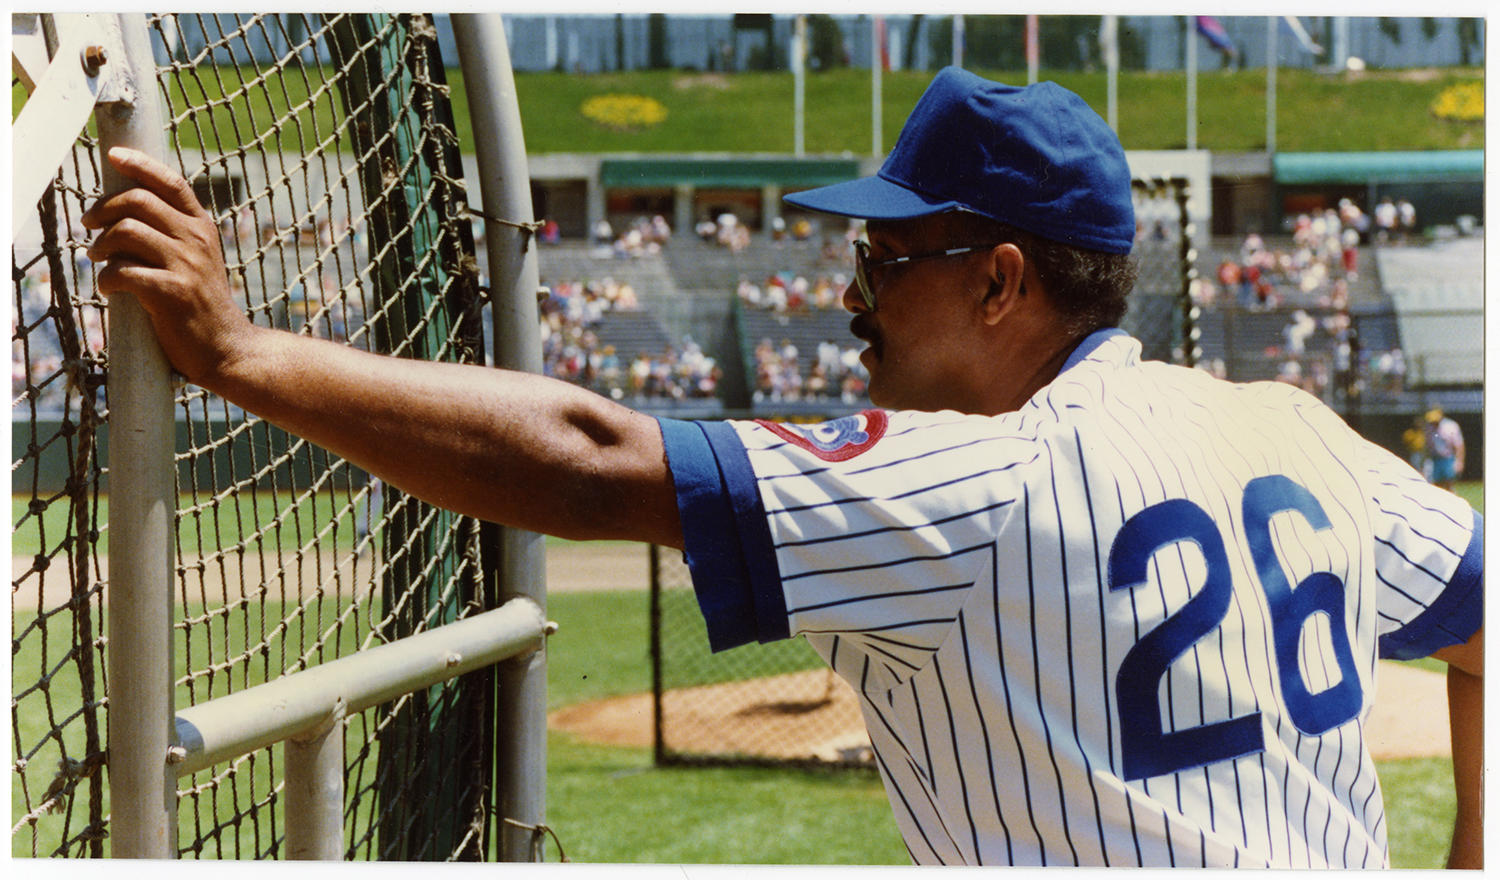 Billy Williams has remained with the Cubs' organization during his retirement as a coach and advisor. (Doug McWilliams / National Baseball Hall of Fame and Museum)